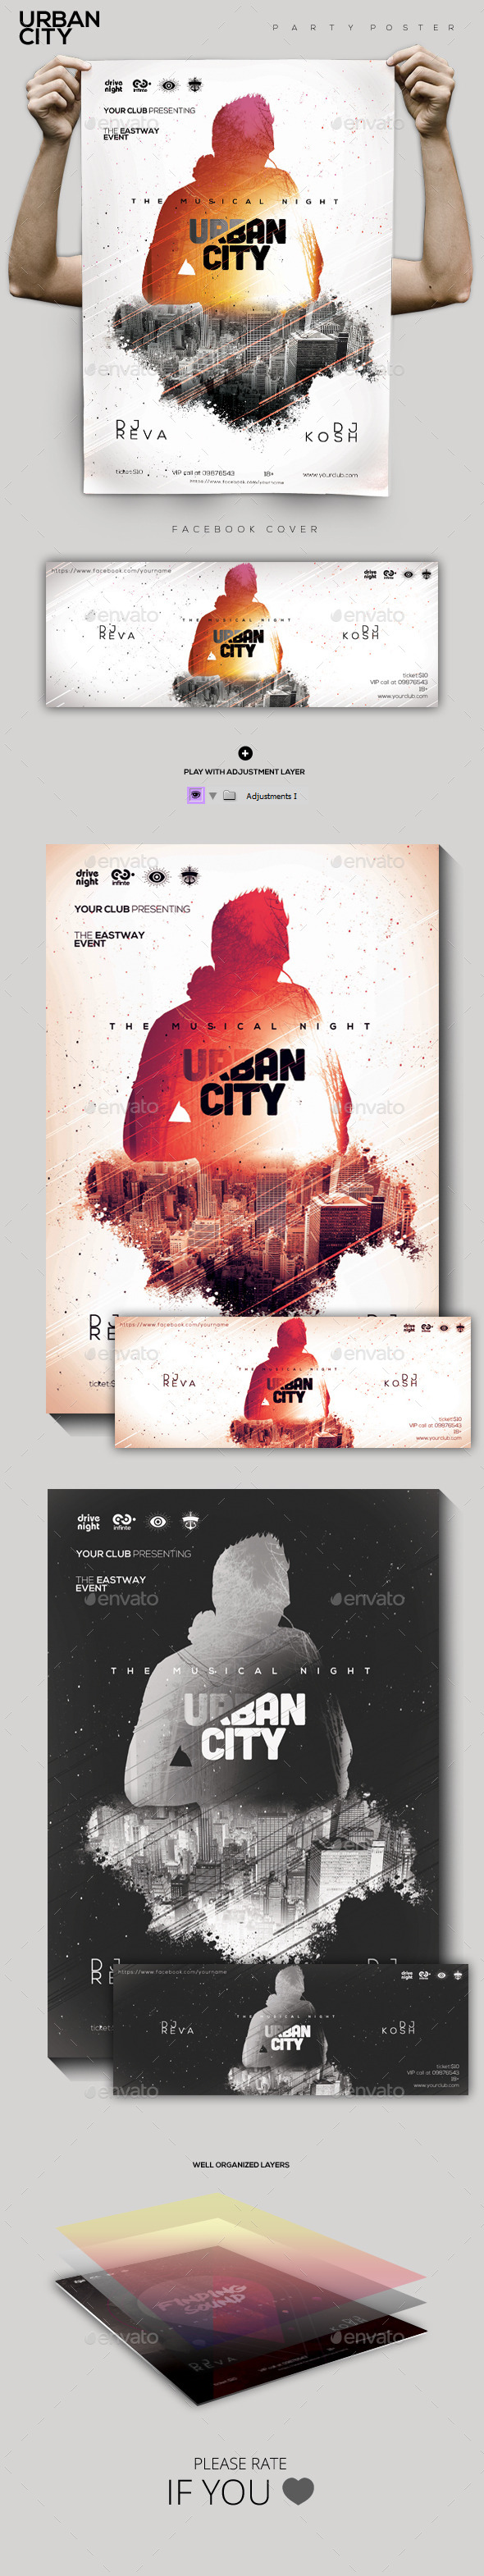 Urban City Party Flyer/Poster - Clubs & Parties Events